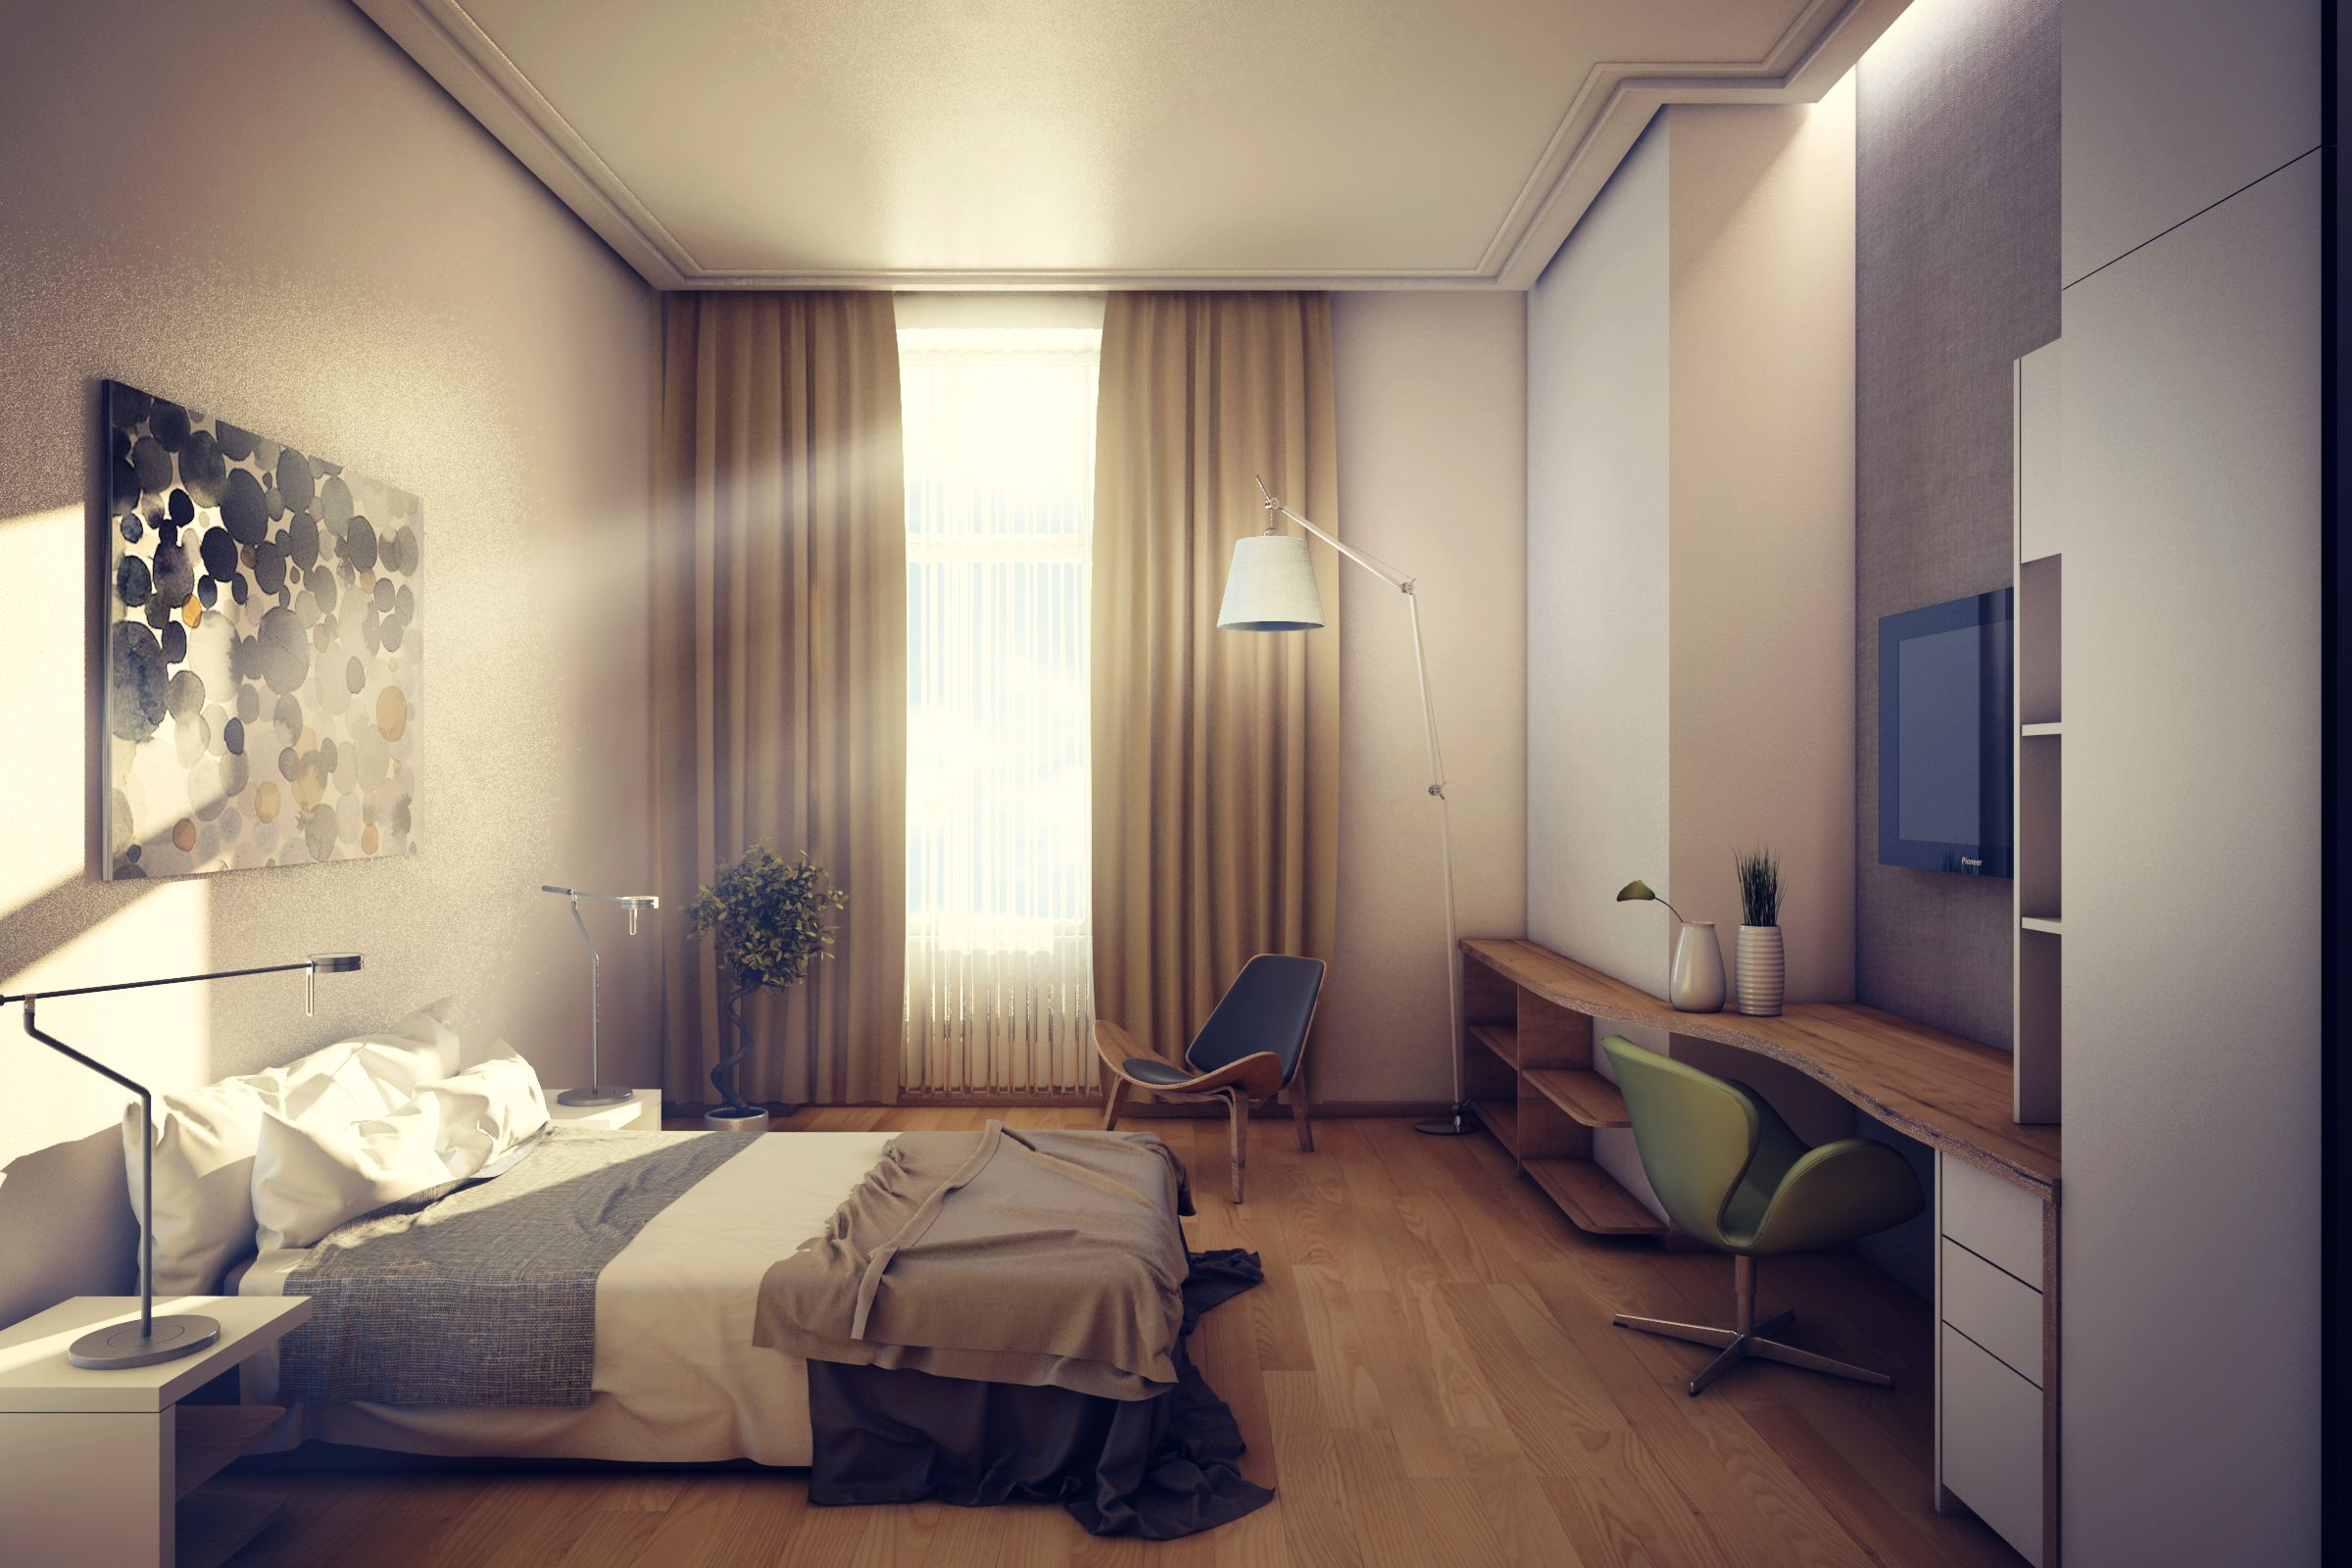 Hotel room interior design 3d modelling rendering and for Hotel room interior